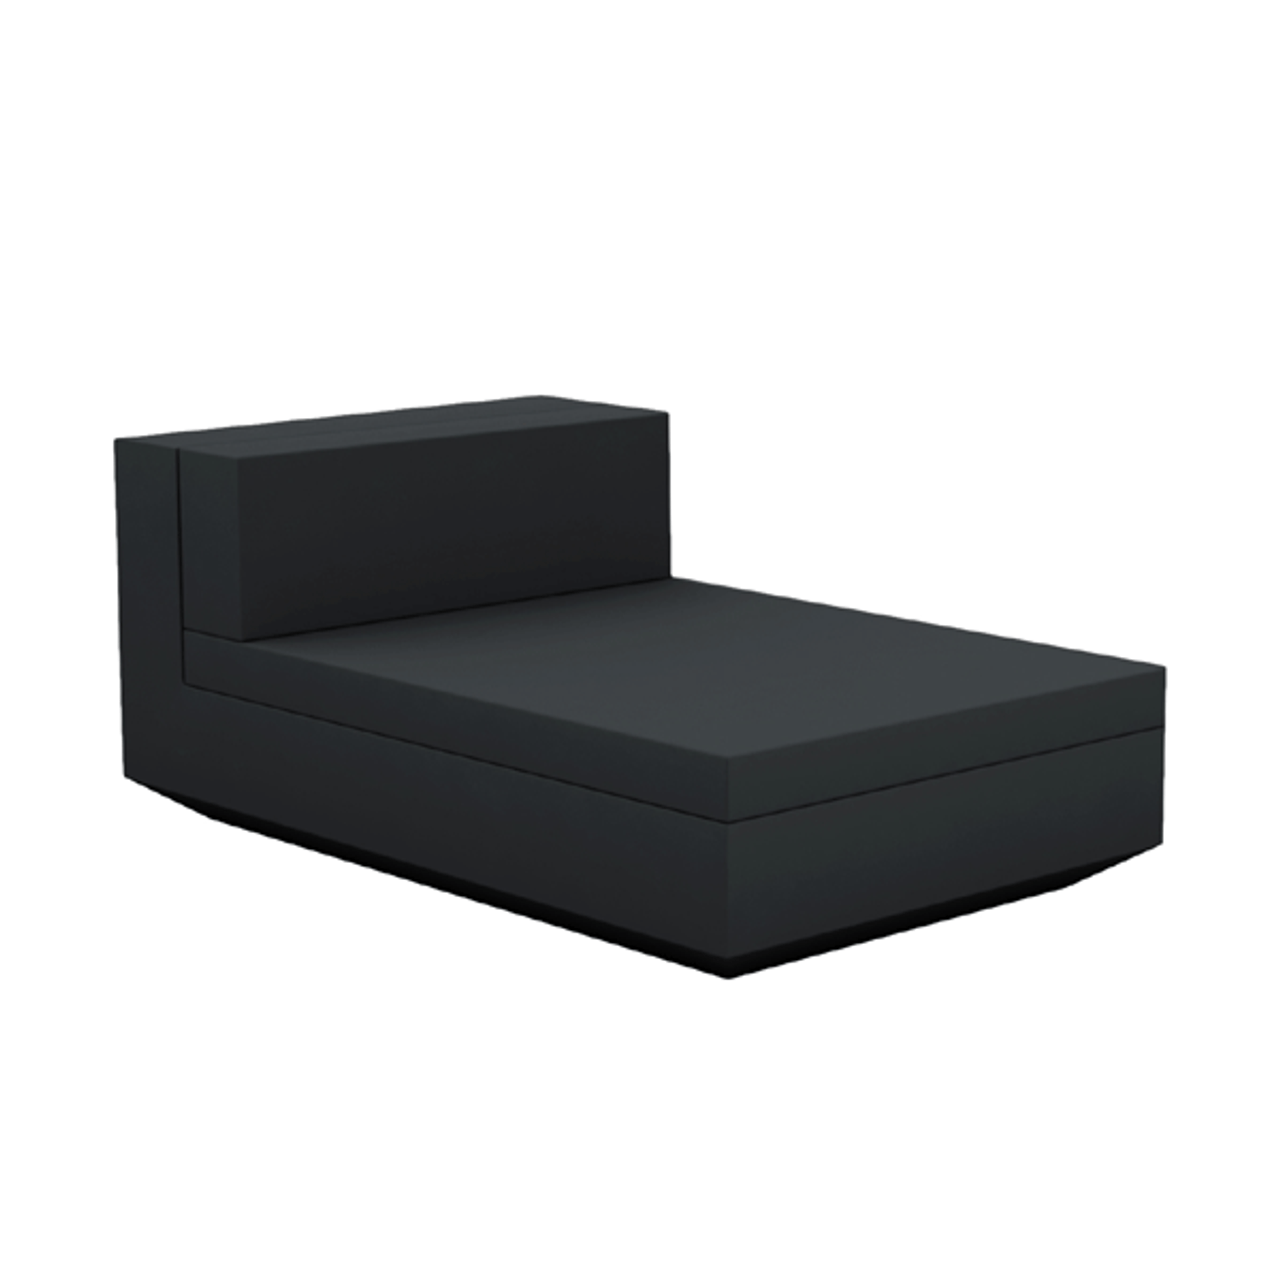 Pleasant Vela Sectional Sofa Armless Chaise Lounge Alphanode Cool Chair Designs And Ideas Alphanodeonline